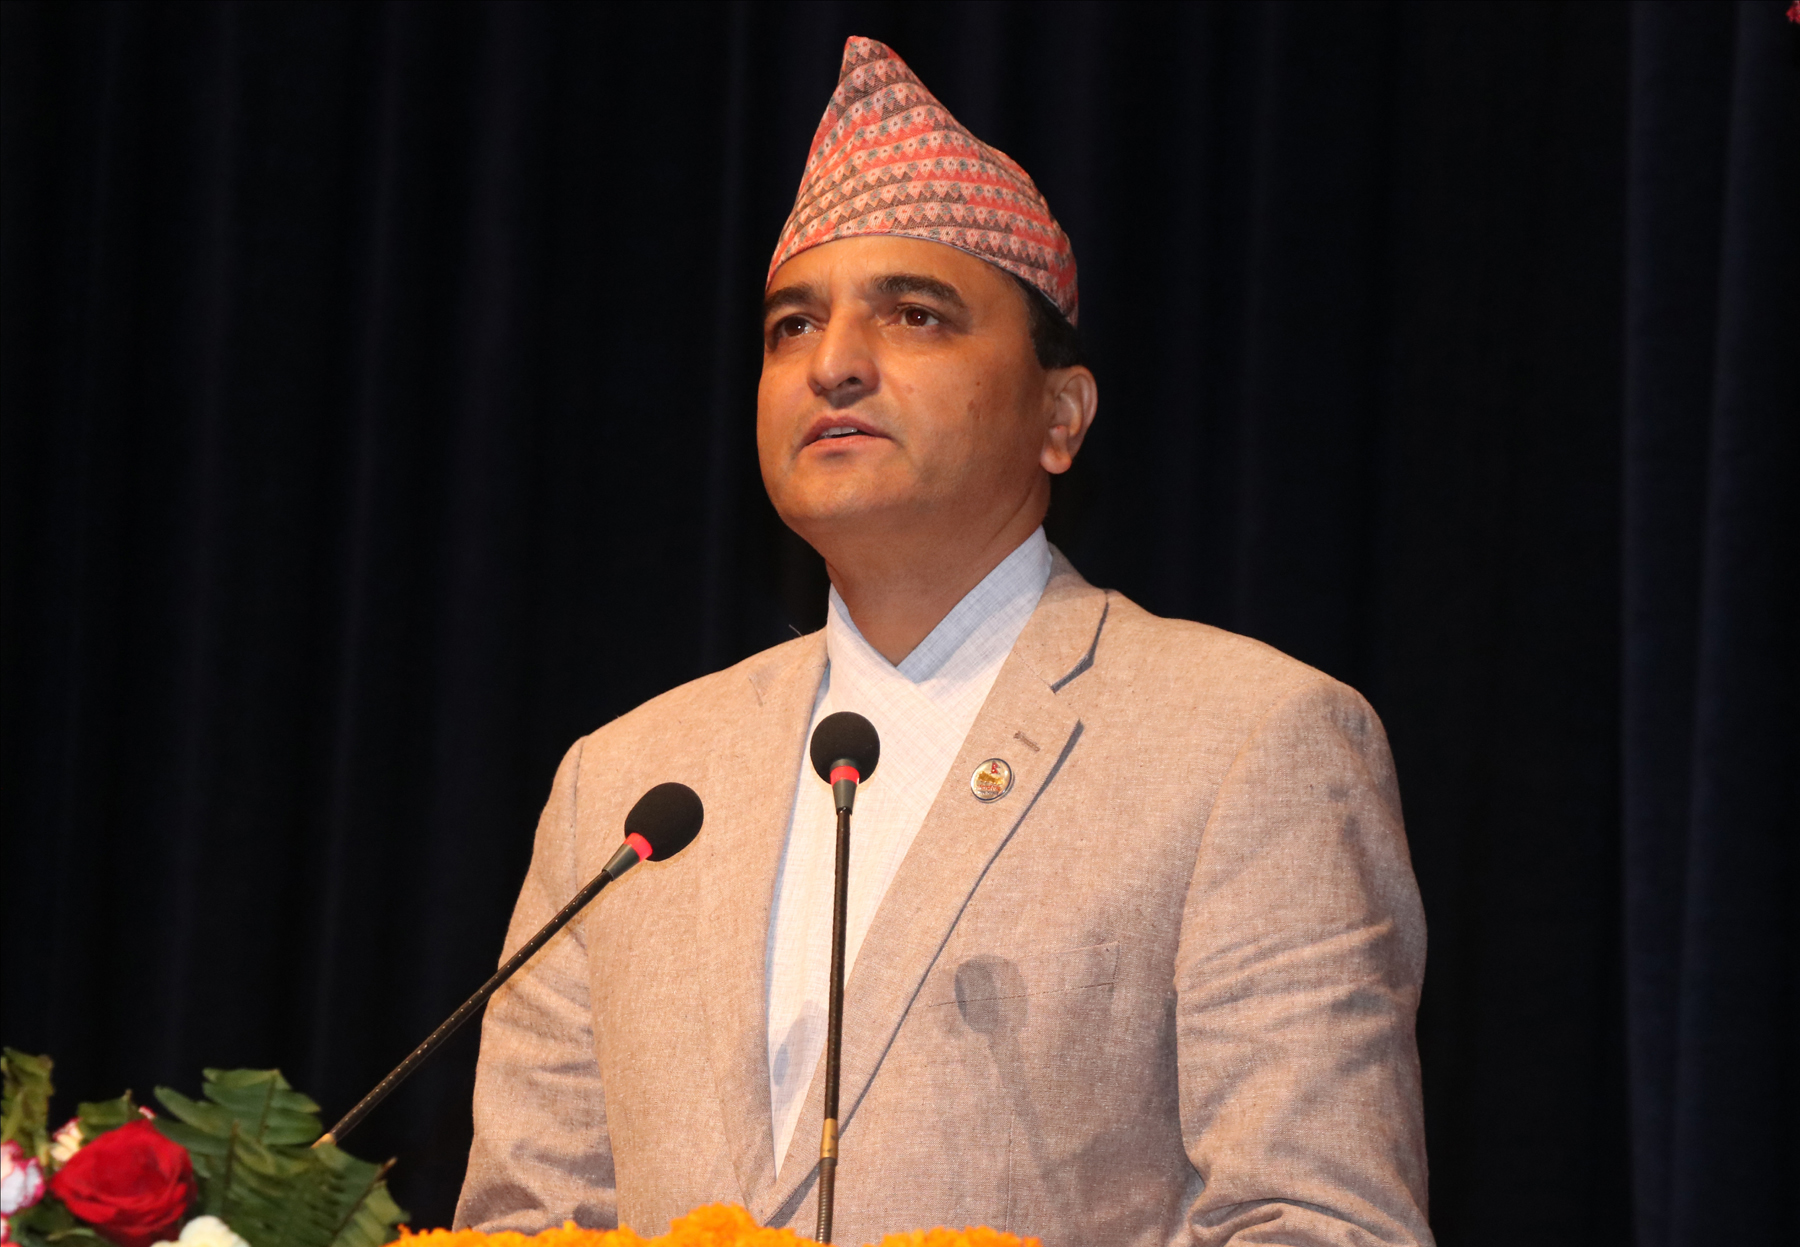 Minister Bhattarai directs NTB officials to prepare infrastructures to accommodate 500,000 tourists around Kathmandu Valley